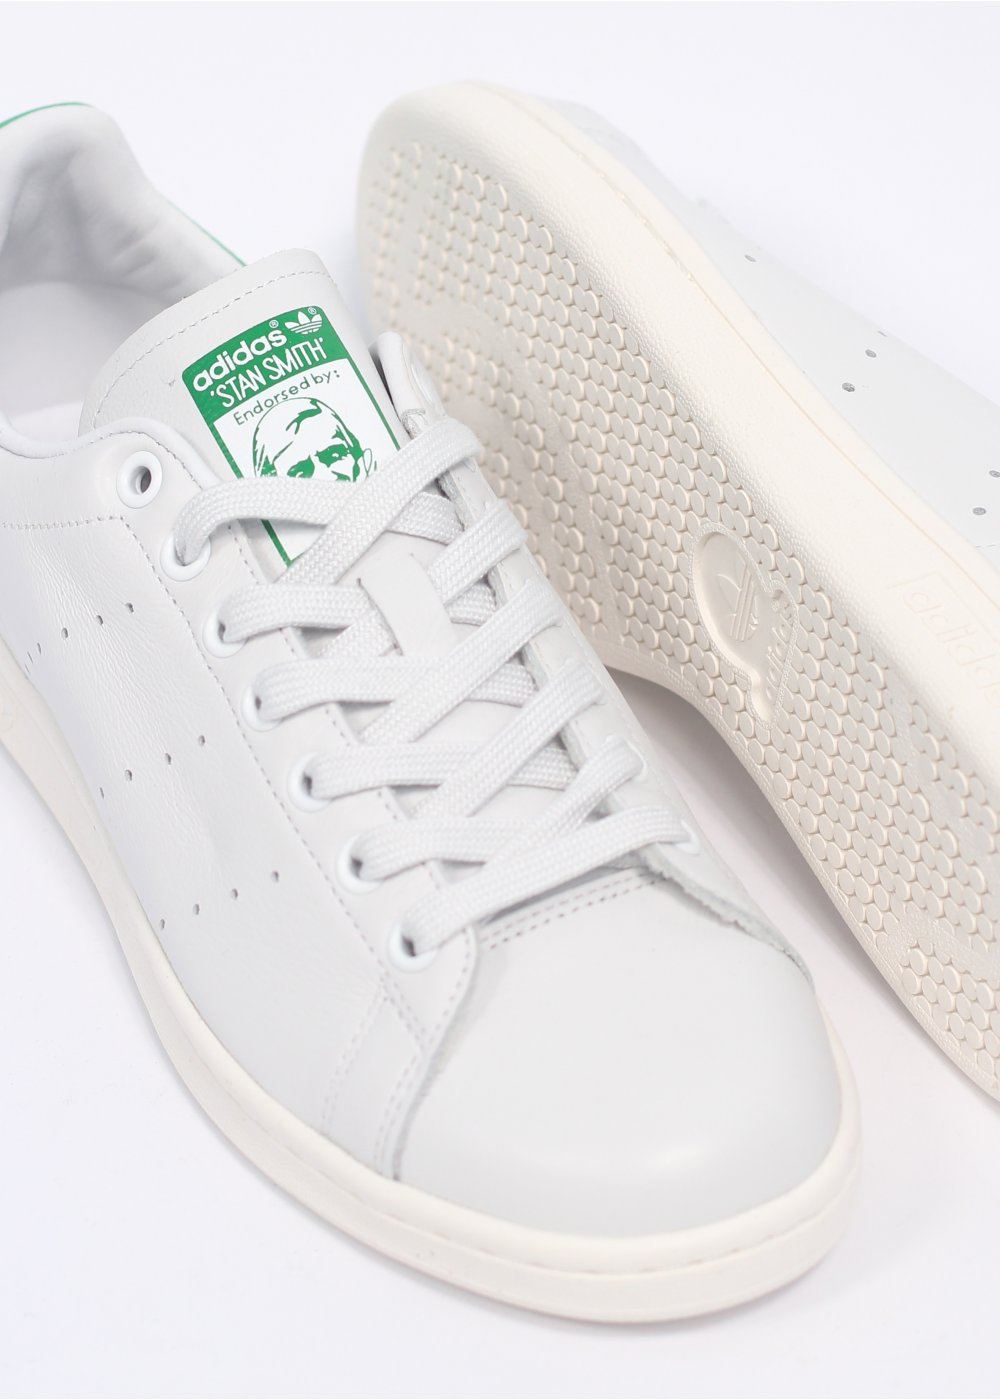 Adidas Stan Smith Trainers In White And Green